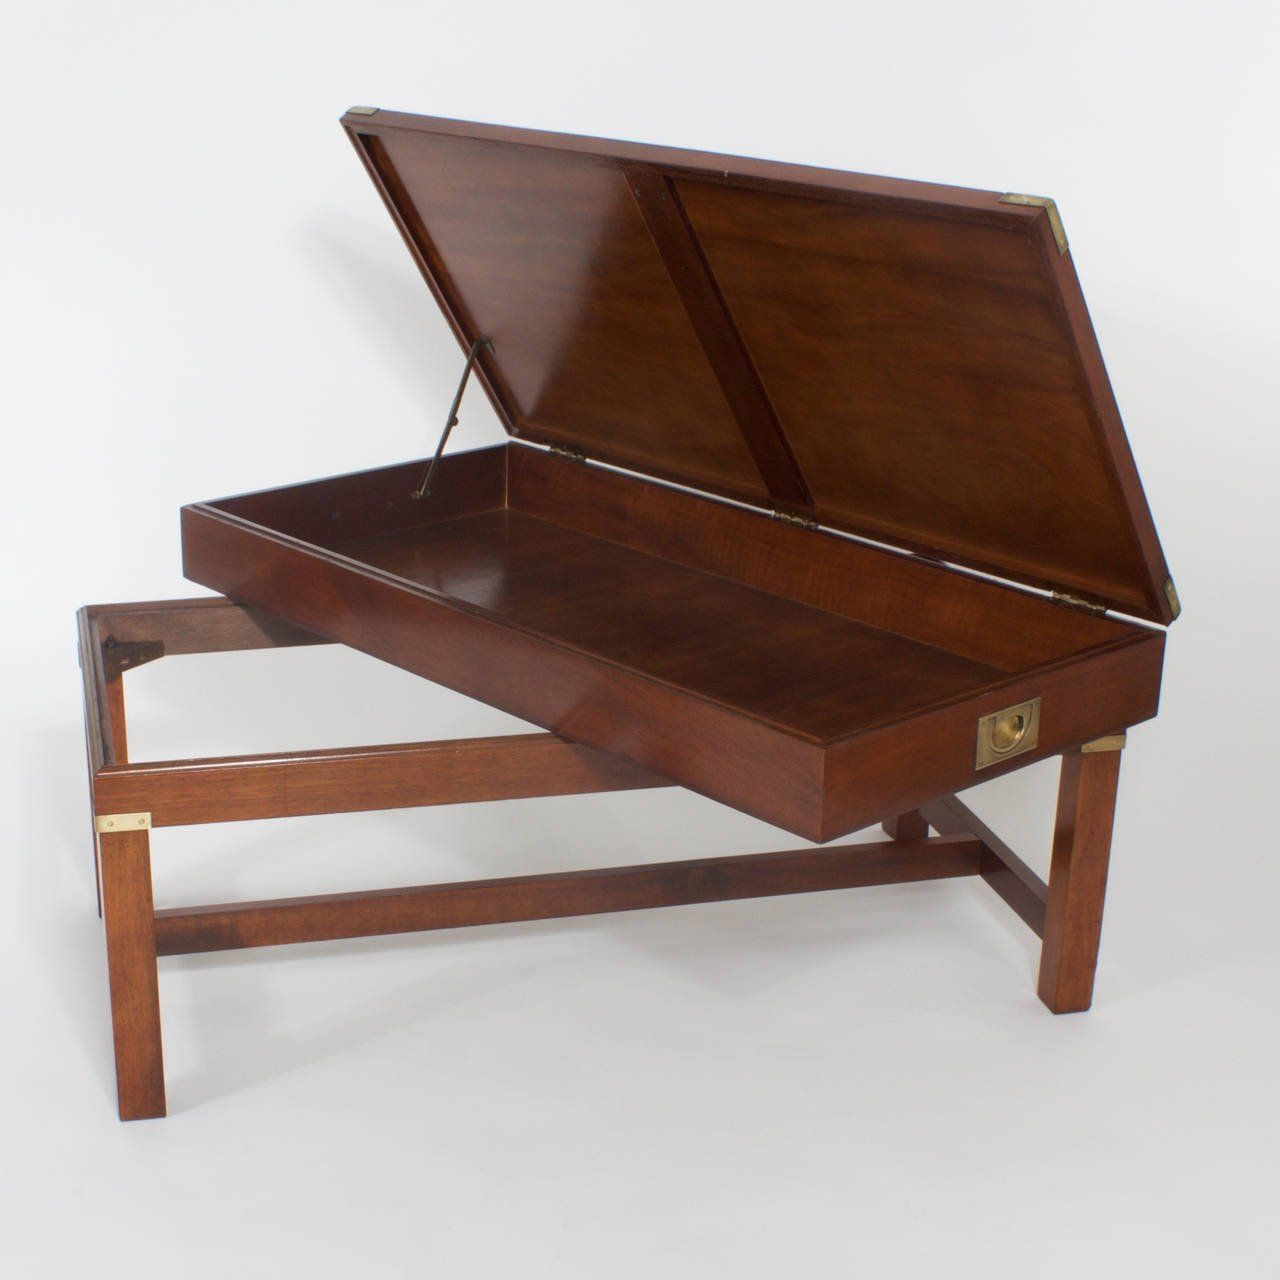 Campaign Gun Case Mounted as a Coffee Table 1950